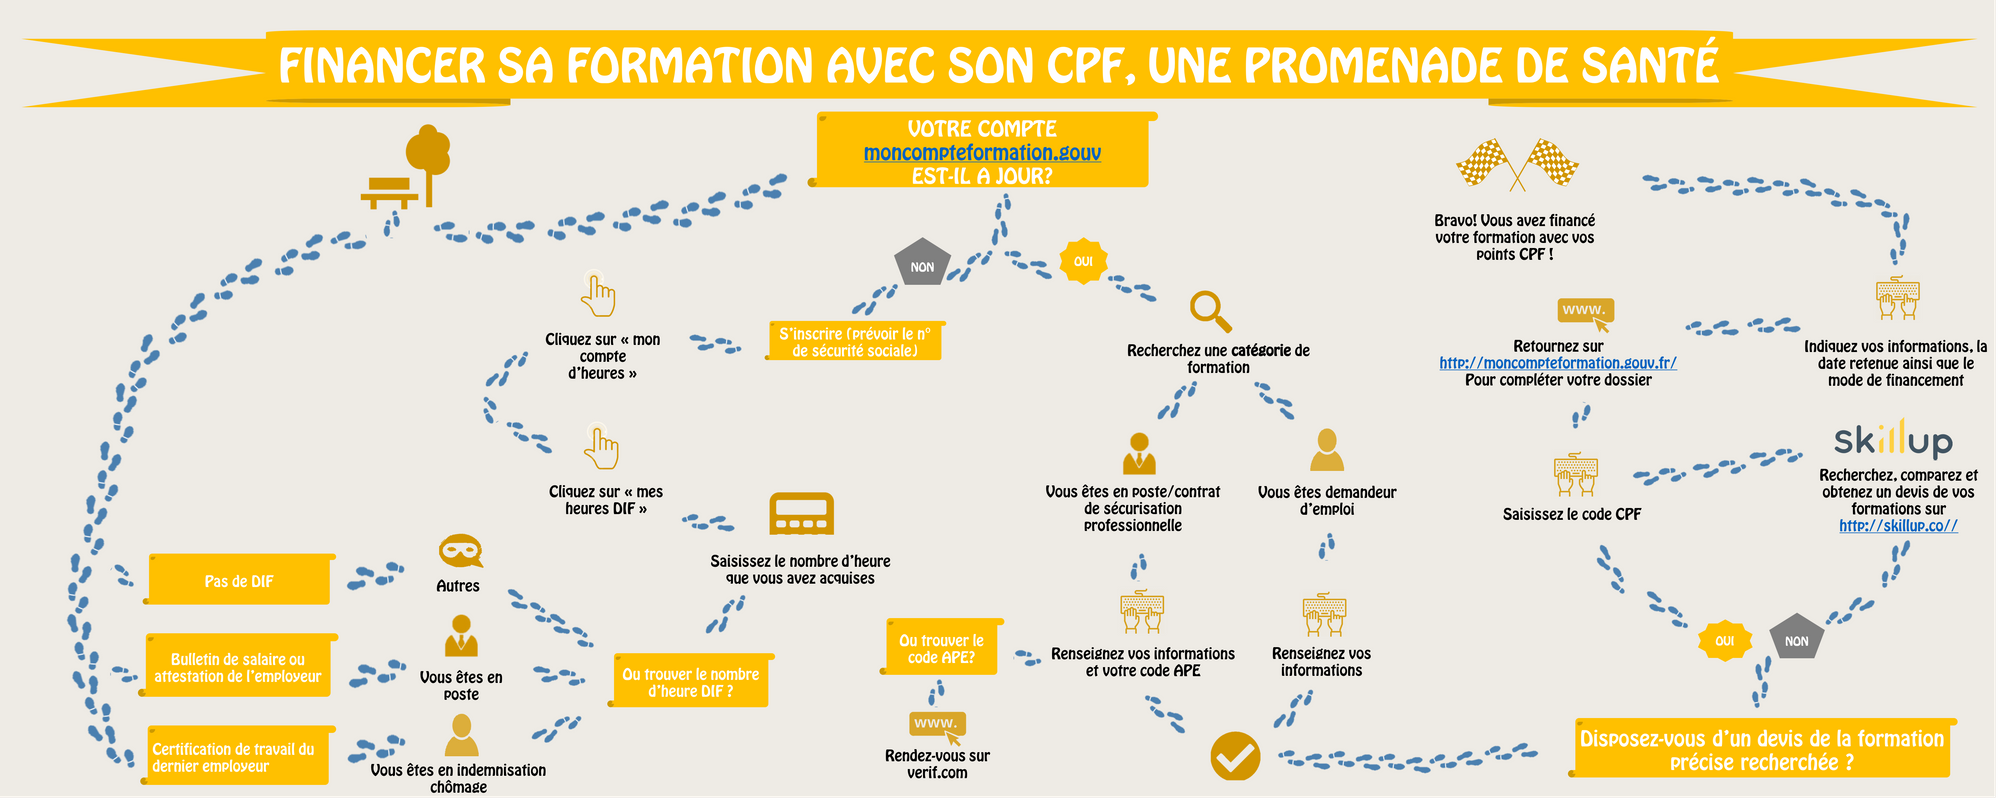 financer-son-cpf2